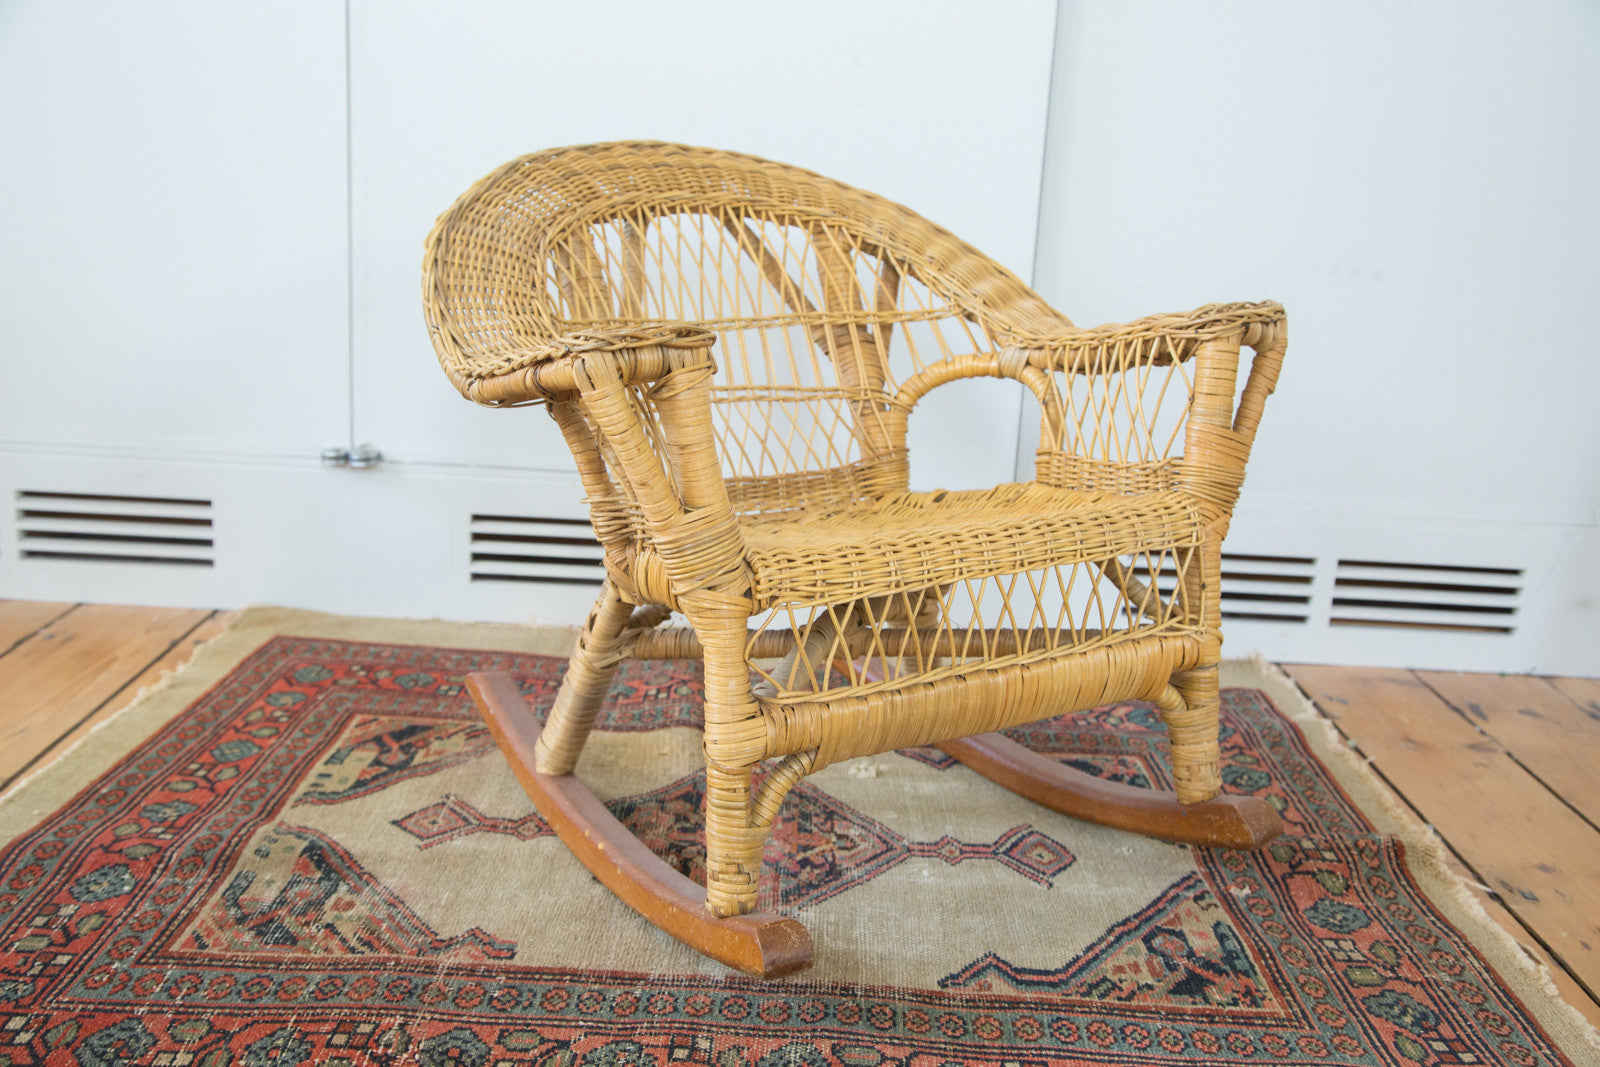 Previous Image Next Image. Sold. Vintage Boho Wicker Childu0027s Chair ...